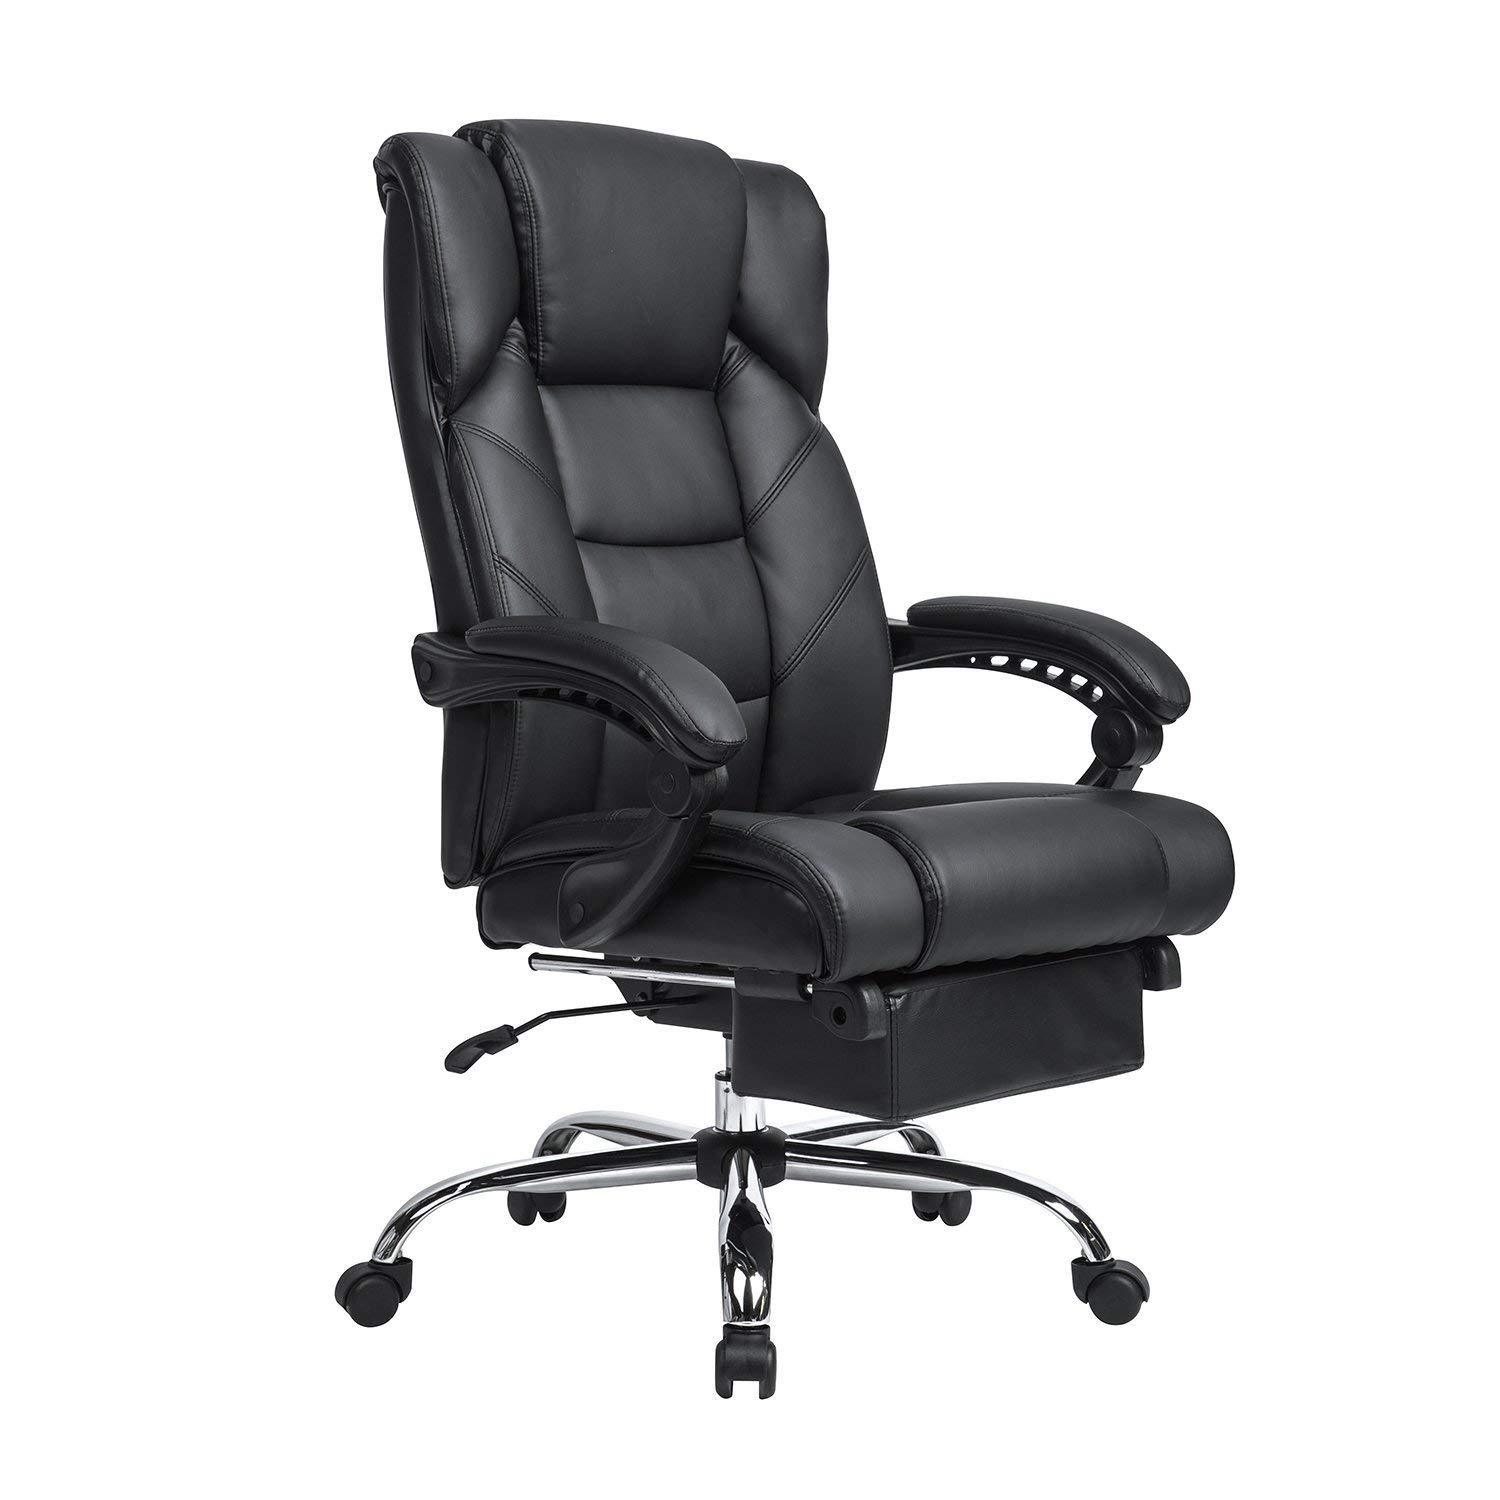 Lch Reclining Leather Office Chair High Back Executive With Adjule Angle Recline Locking System And Footrest Best Ergonomic Under